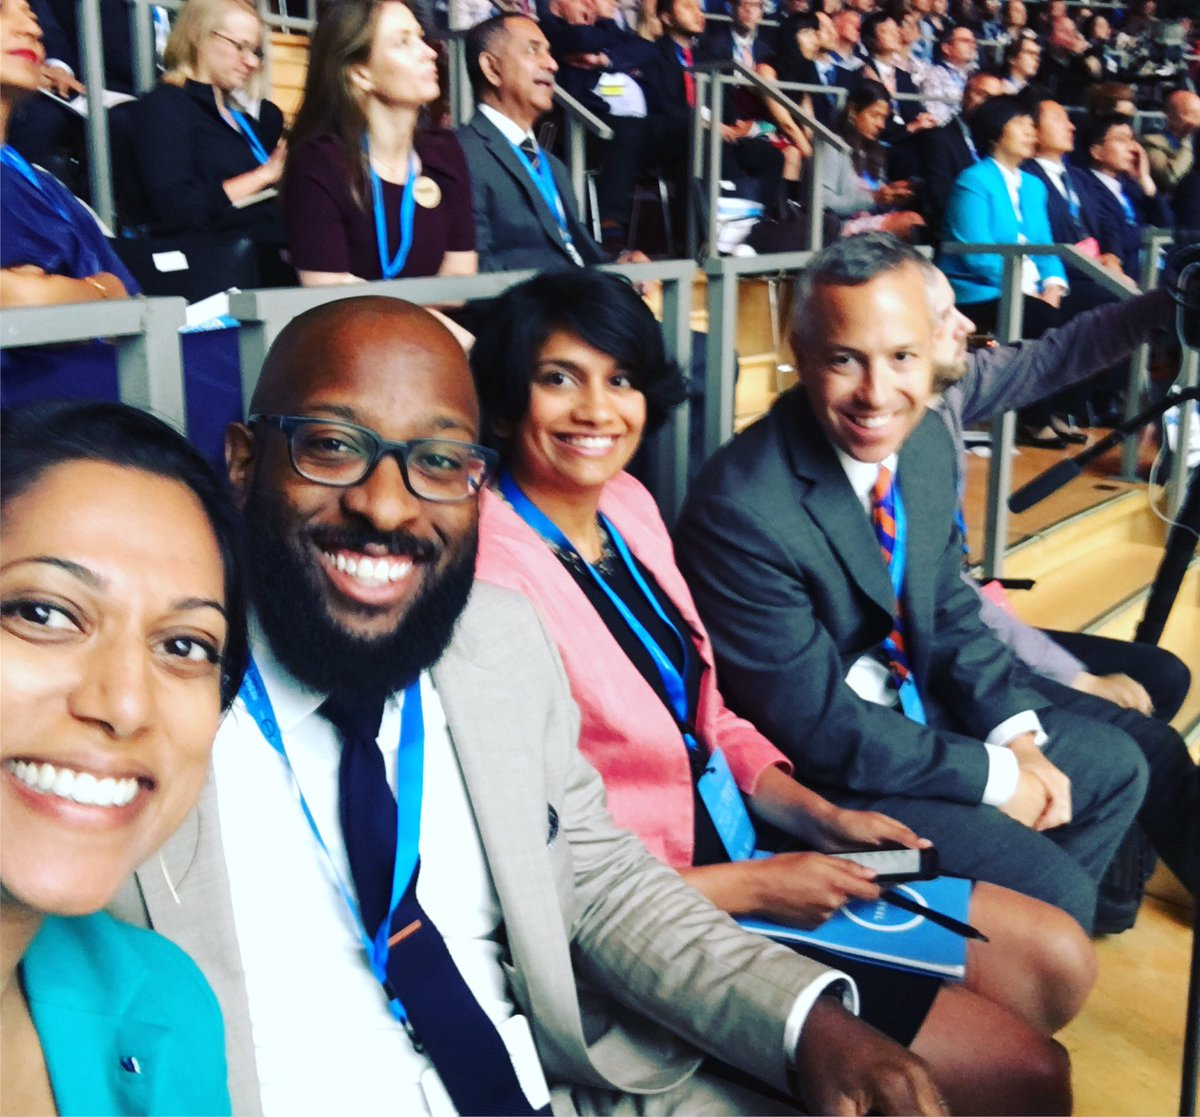 It&#39;s thanks to these #leaders @dzarrilli @growacity @jaineytweets that #NYC continues to #innovate #urban #resilience  @100ResCities <br>http://pic.twitter.com/zc572Y39Lm